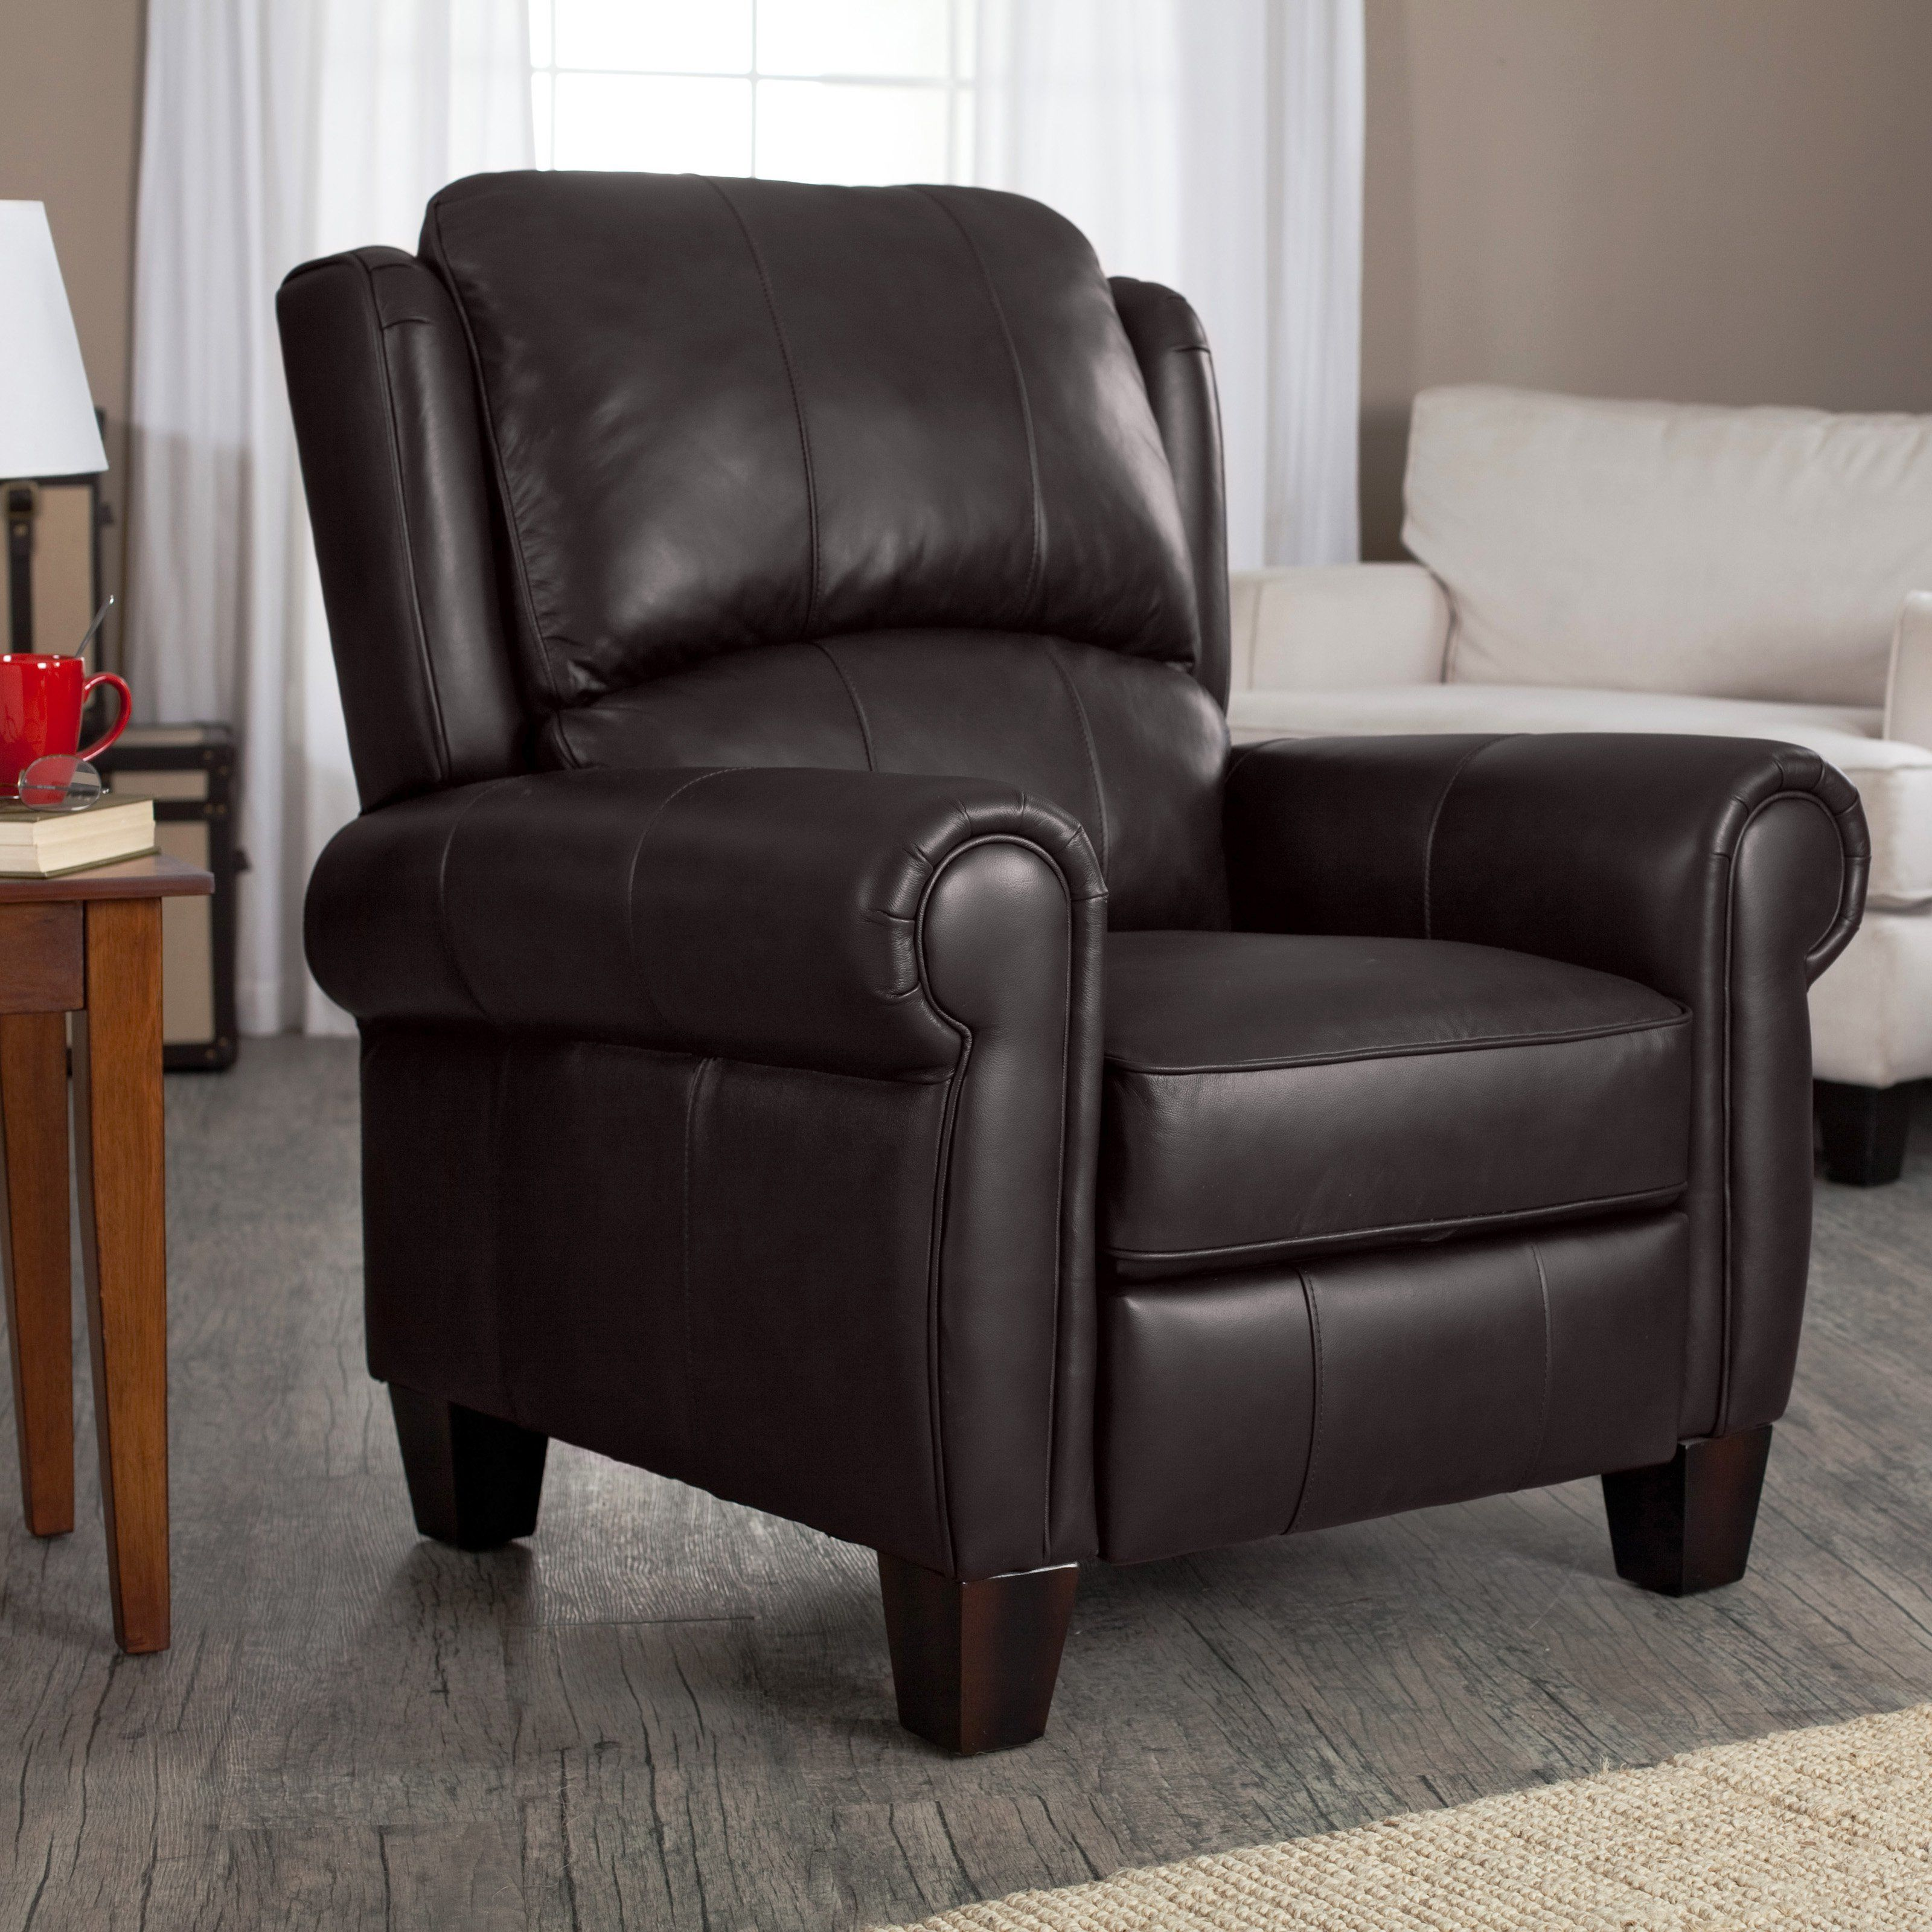 barcalounger htm leather ll backstore dimensions ii club recliner hugger wall capital chair